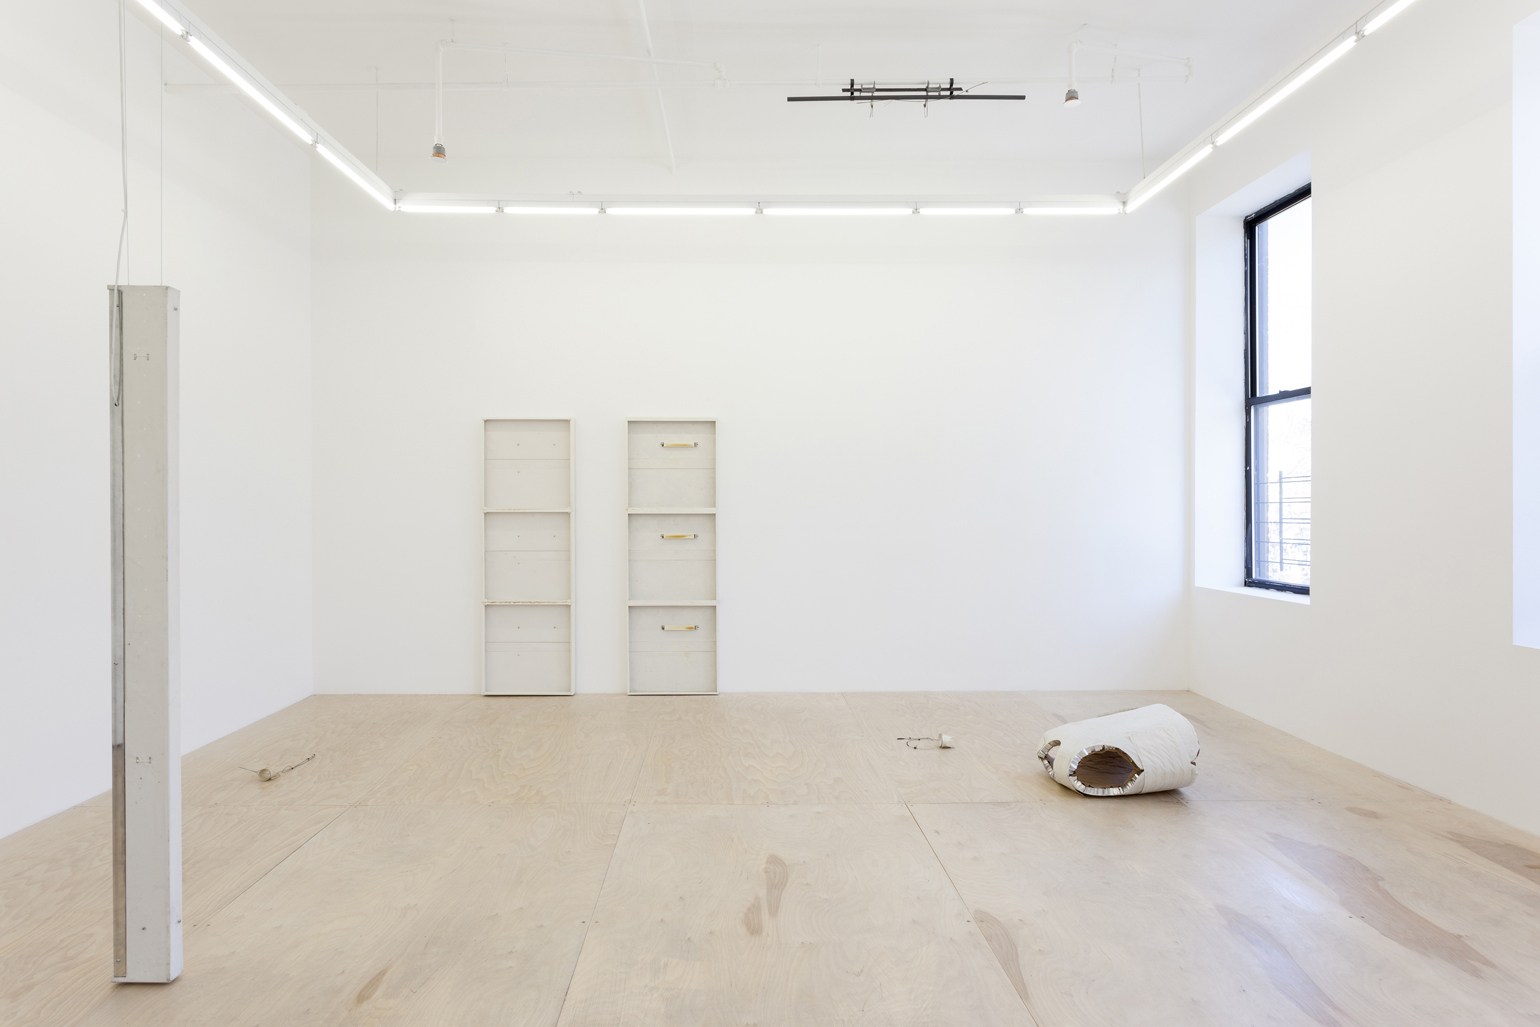 Hester - Installation view of σ, 4 2015